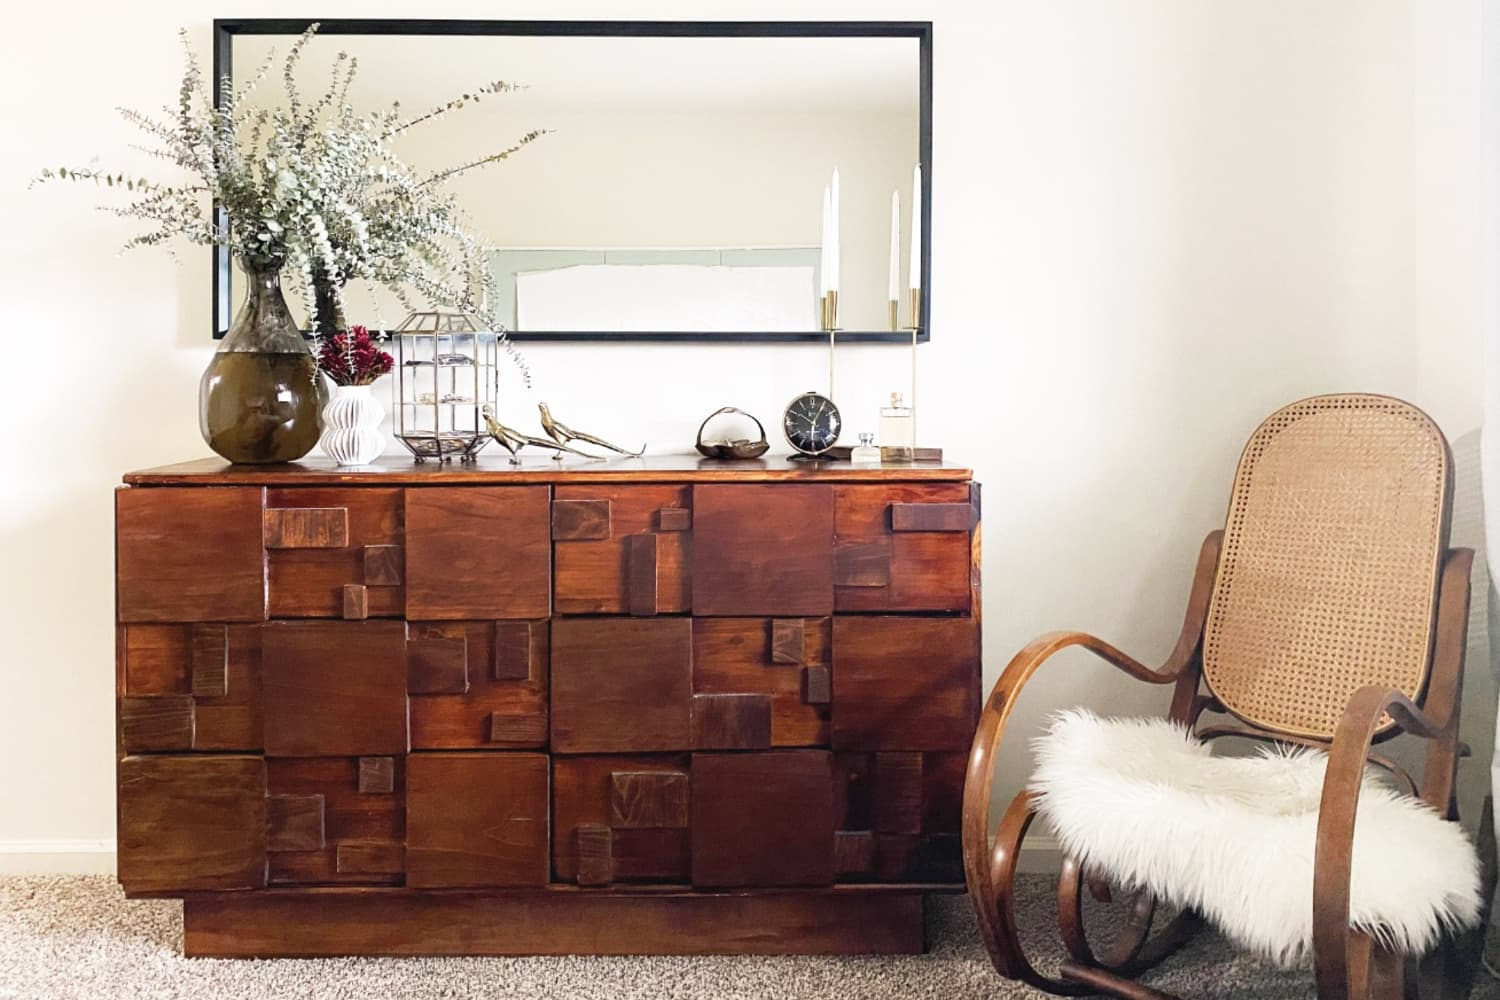 This Stylish Hack Turned a Cheap IKEA Dresser into a Designer Dupe That Costs Thousands